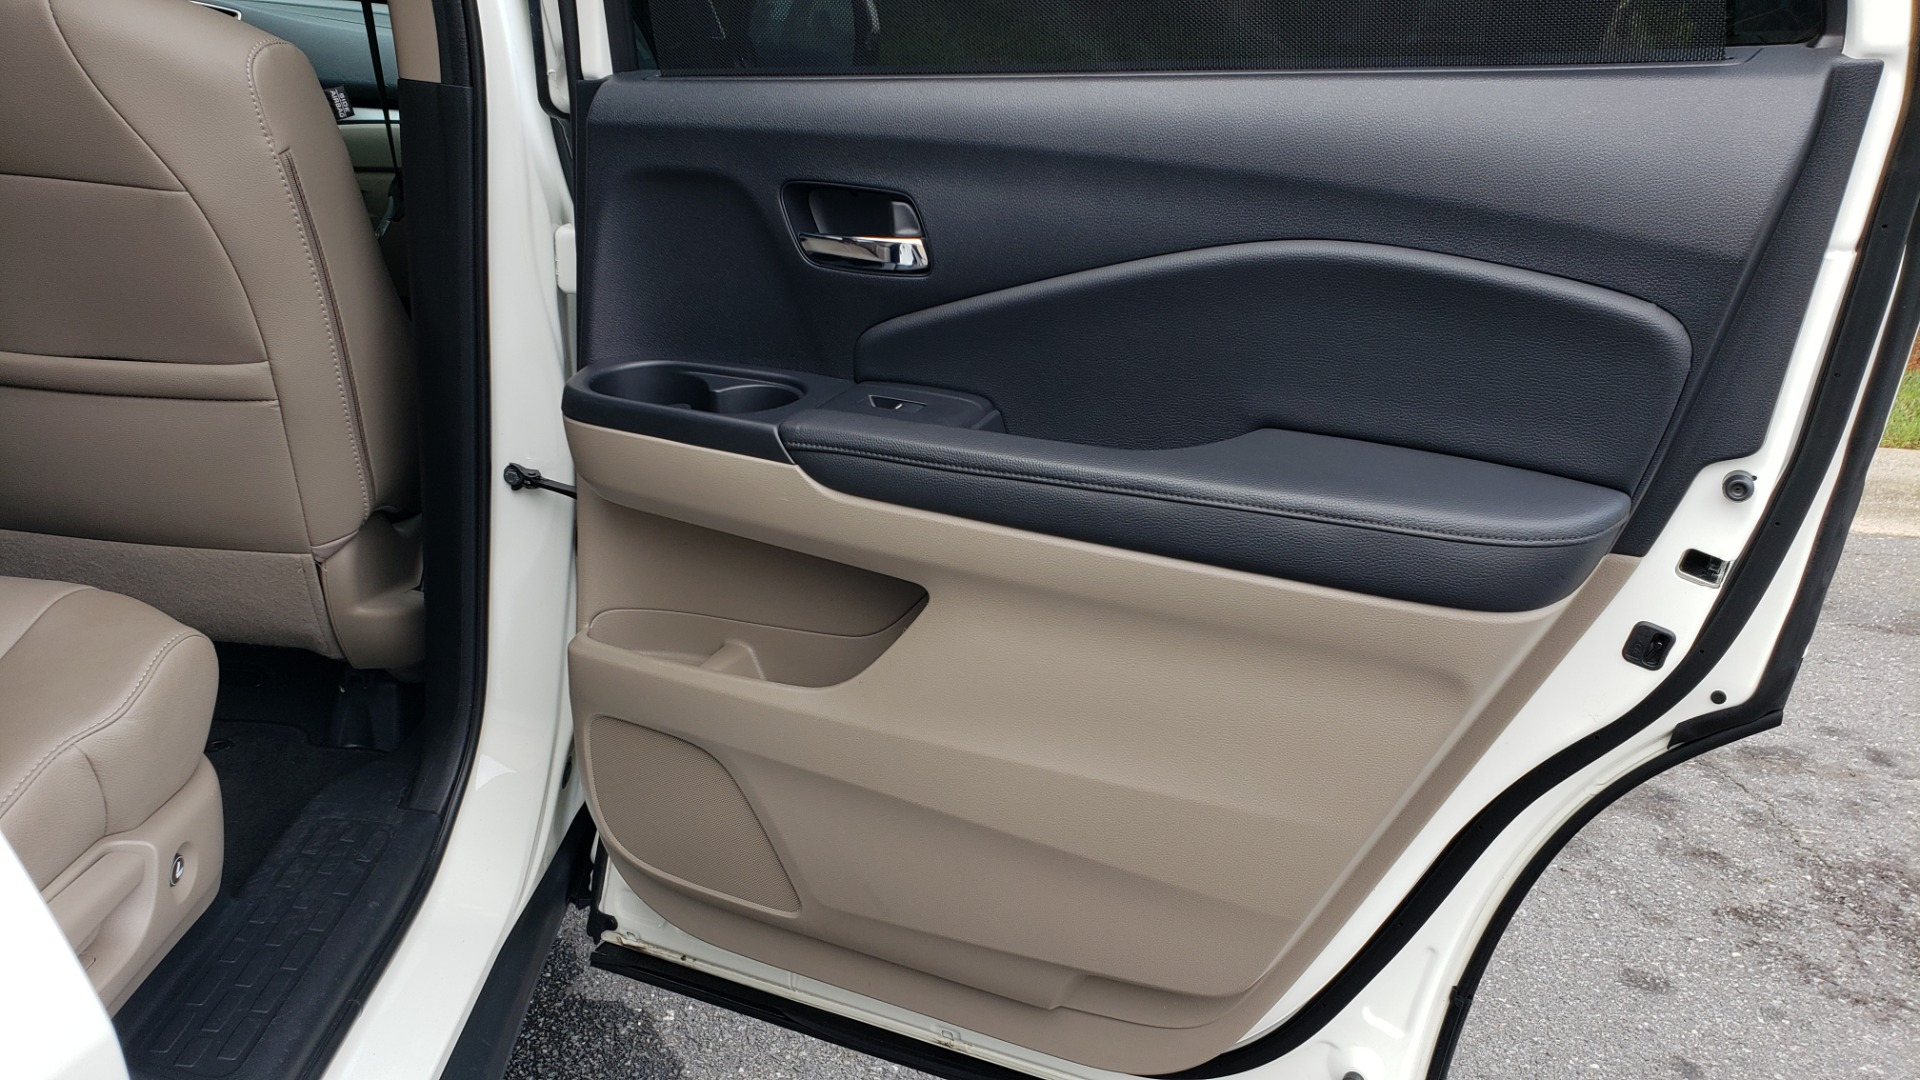 Used 2019 Honda PILOT EX-L / V6 / NAV / SUNROOF / DVD / 3-ROW / REARVIEW for sale Sold at Formula Imports in Charlotte NC 28227 76